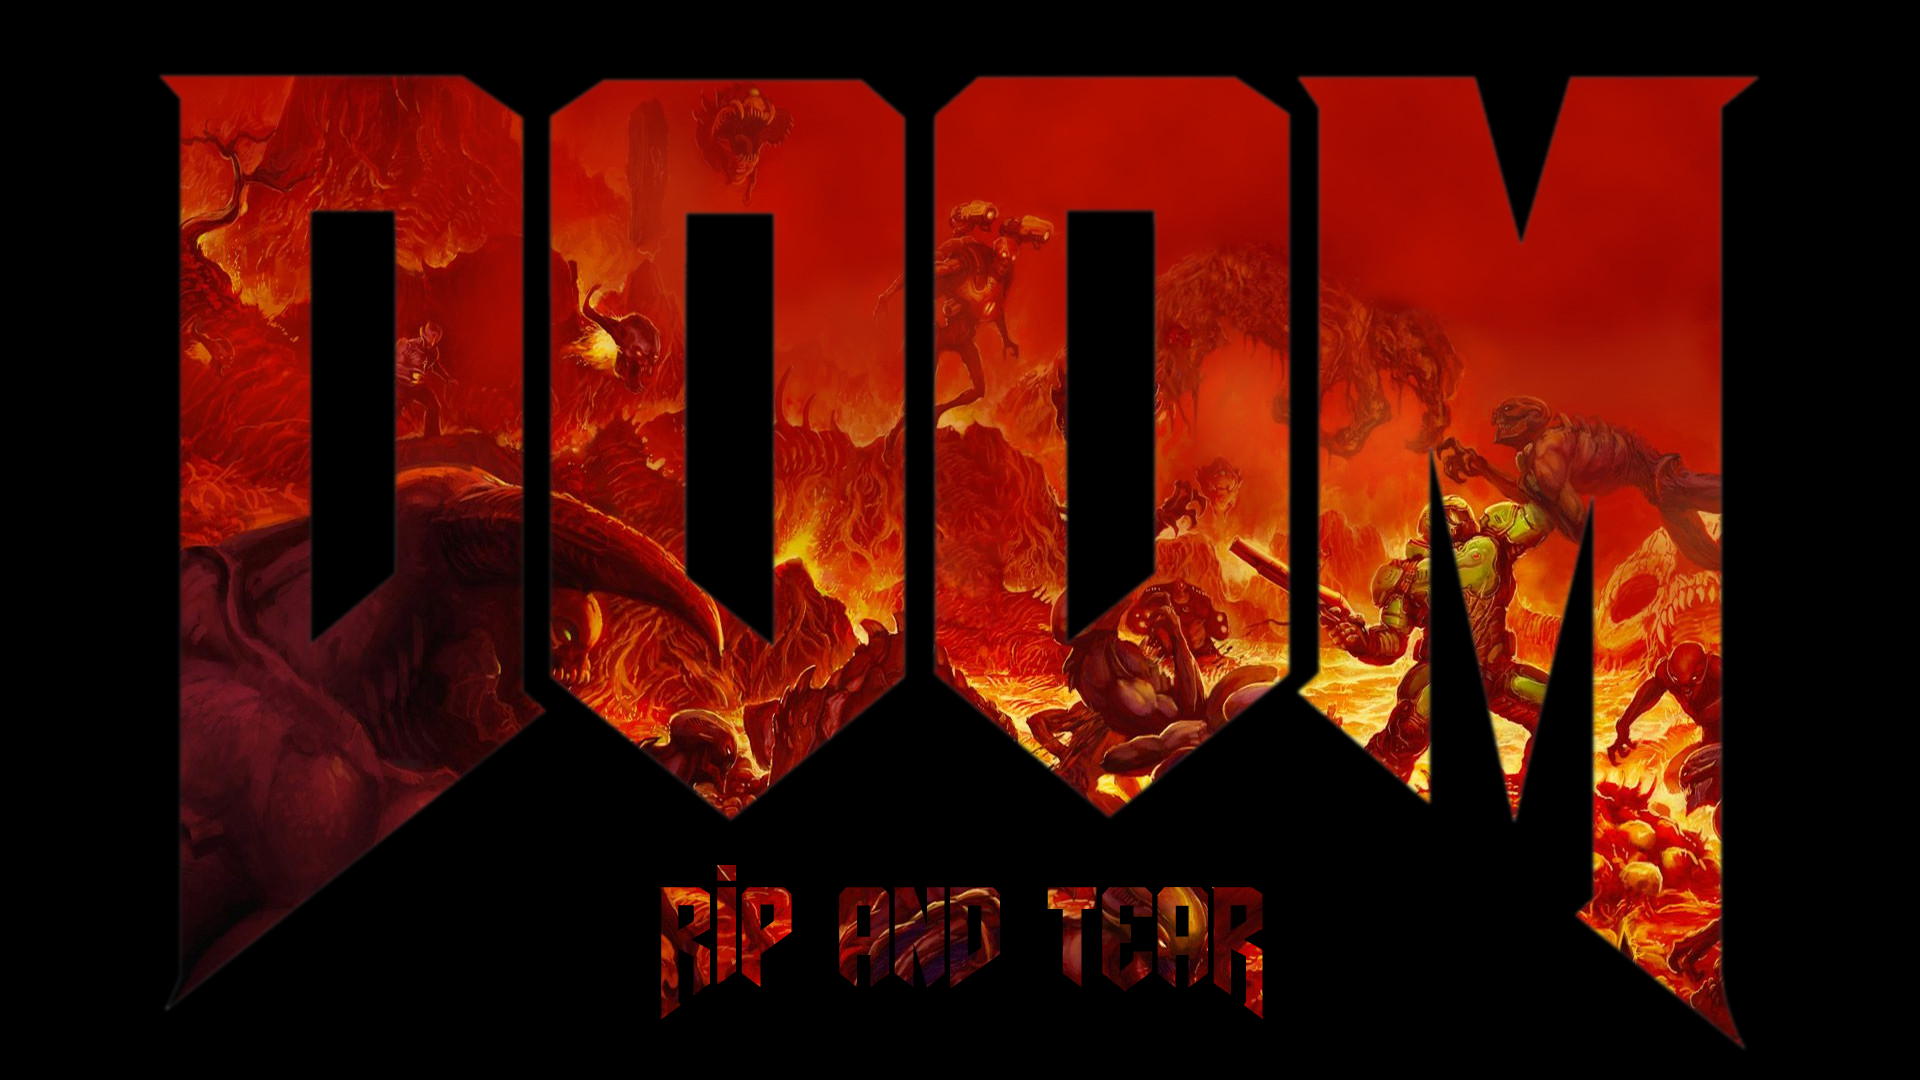 Doom wallpapers in 1080 1440 and 4k [1920x1080] via Classy